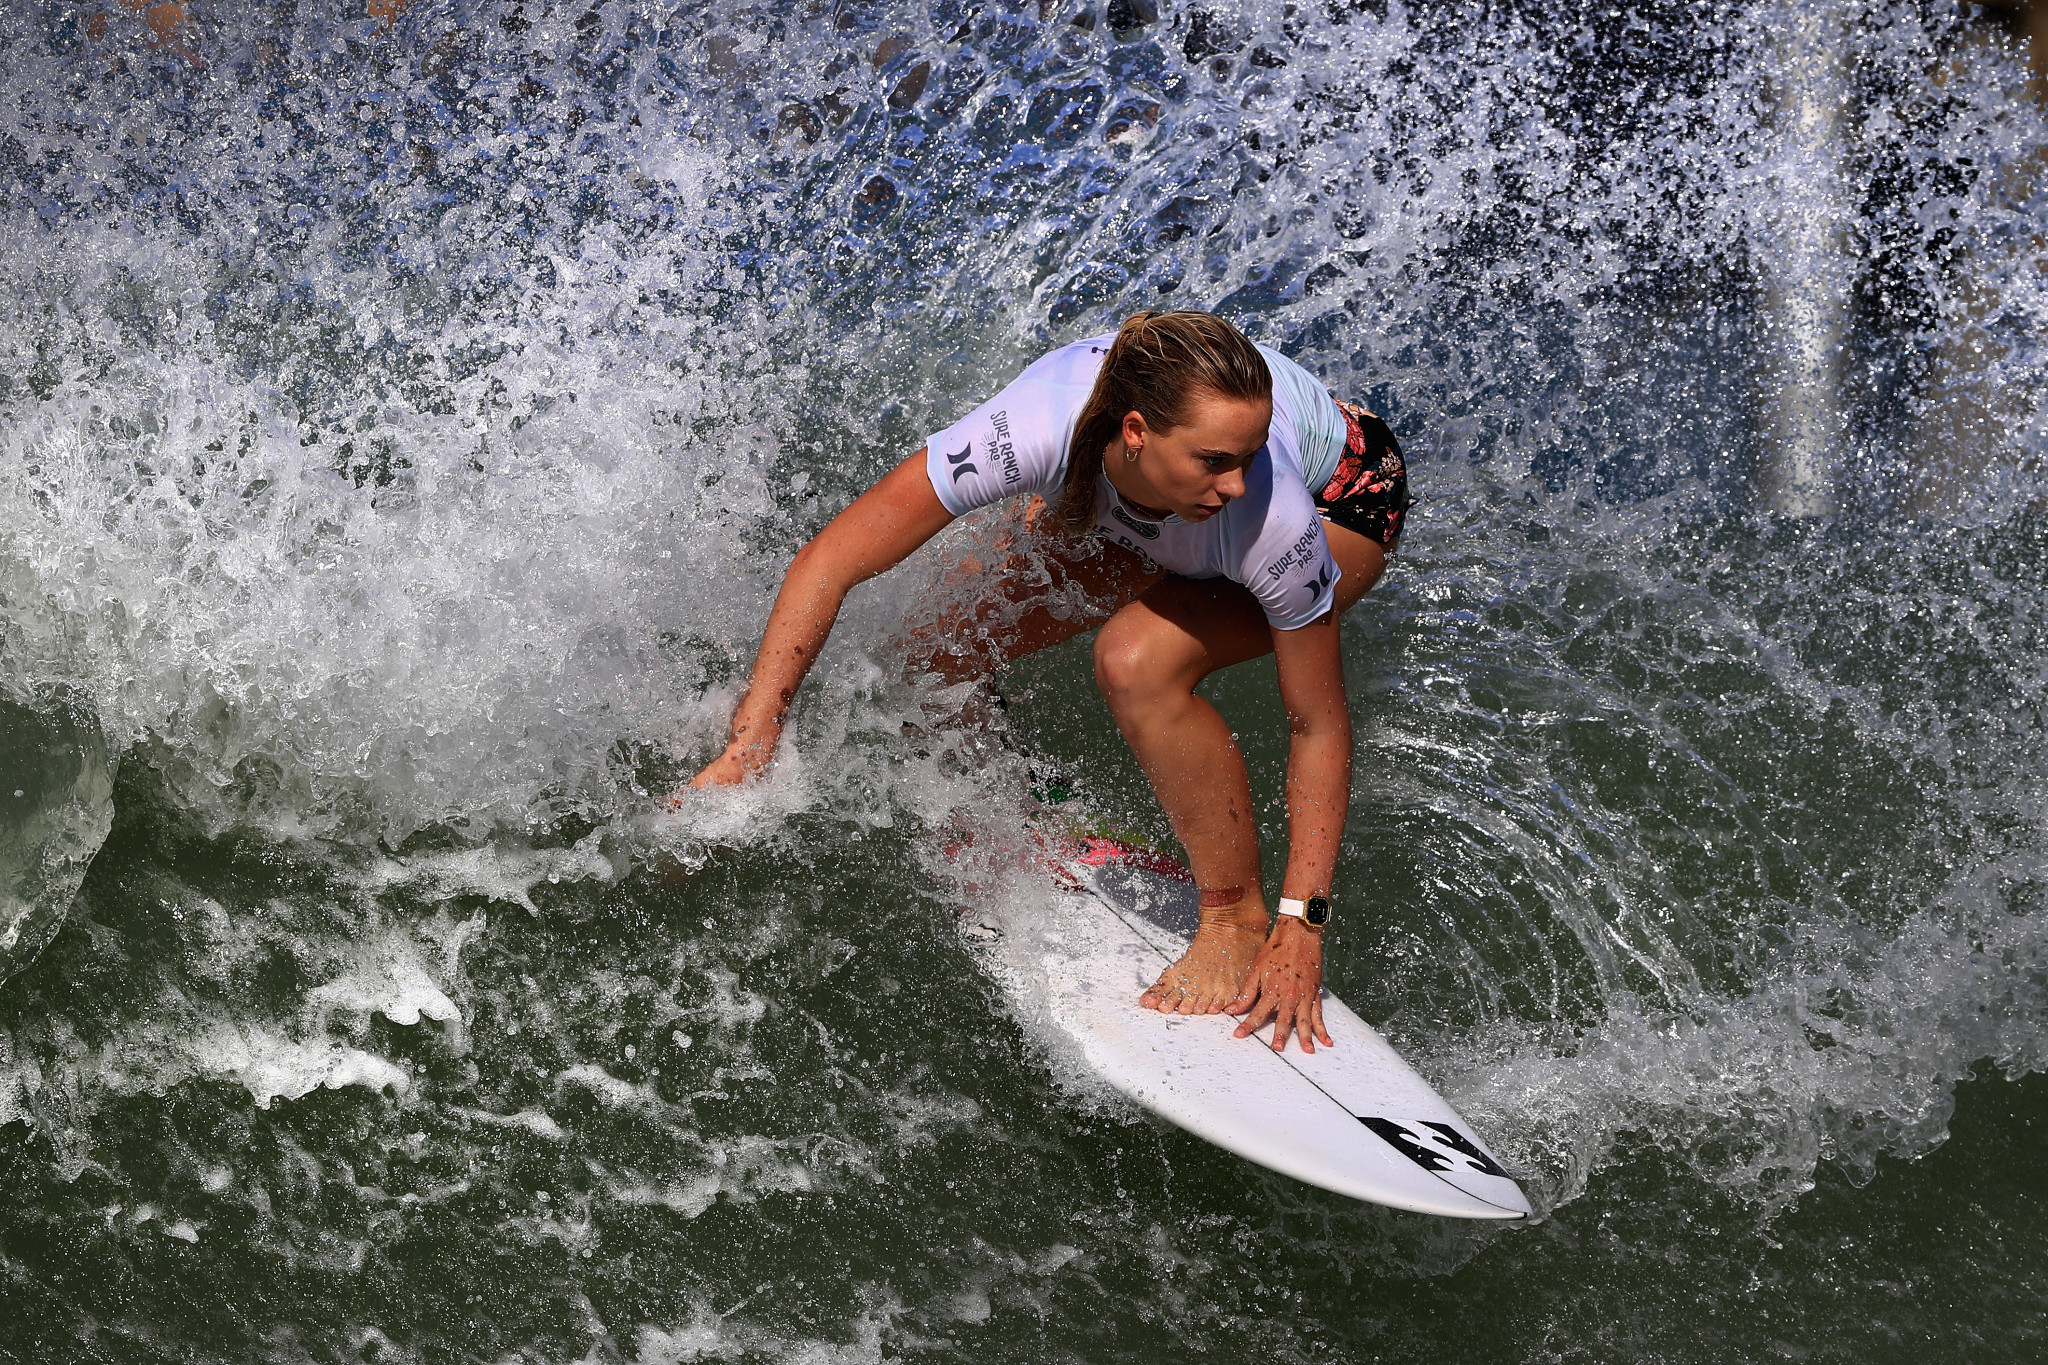 Surfing will be contested at the Tokyo 2020 Olympic Games ©Getty Images